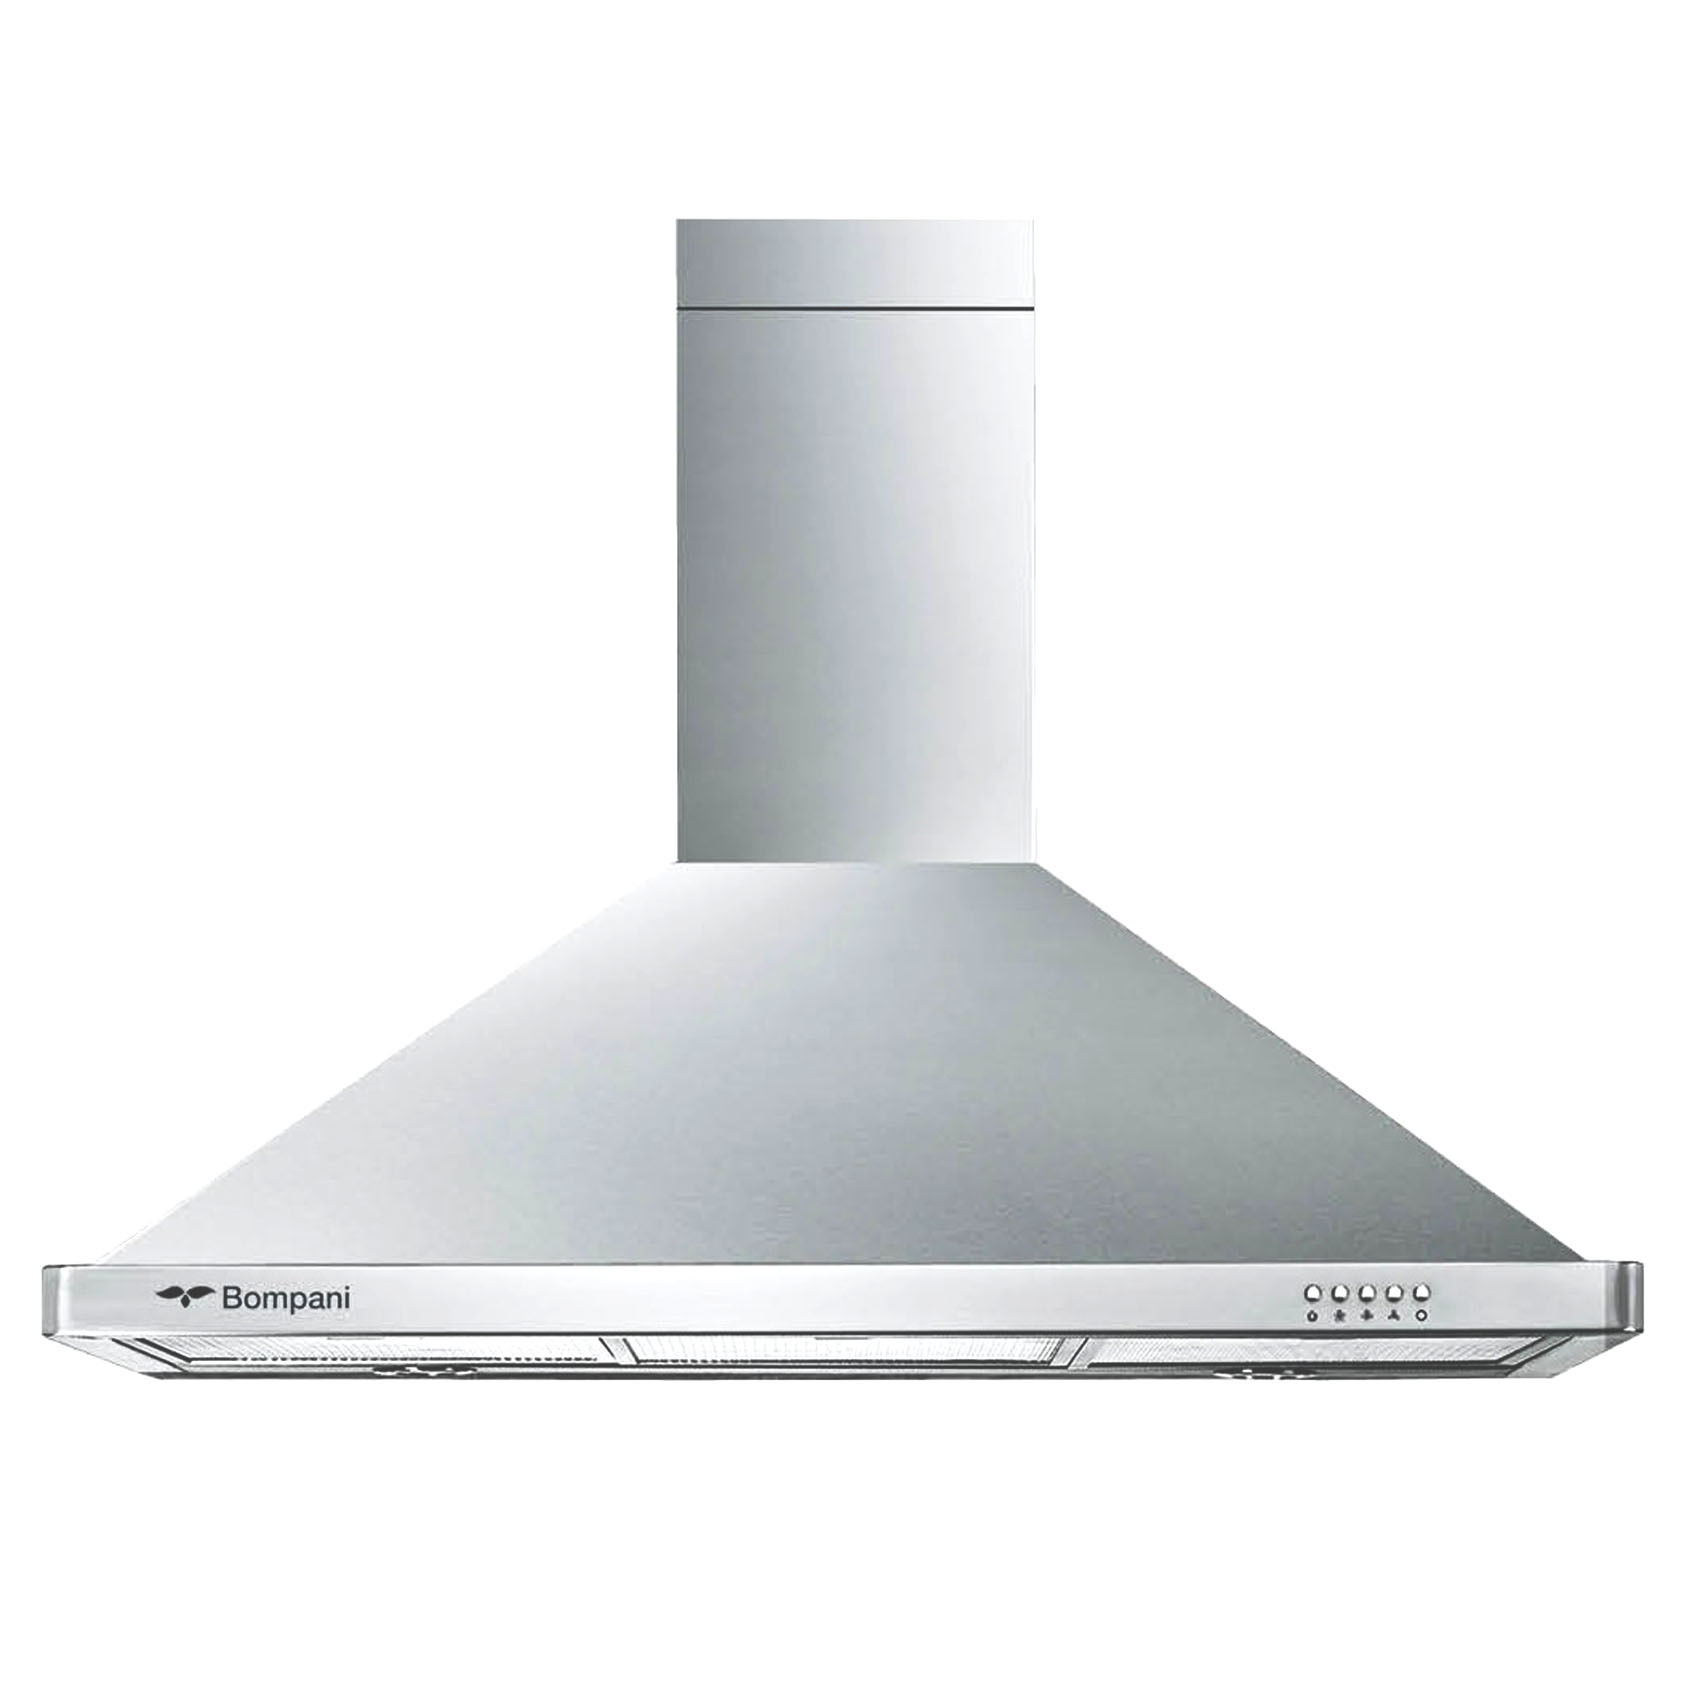 BOMPANI BUILT-IN HOOD 90ST